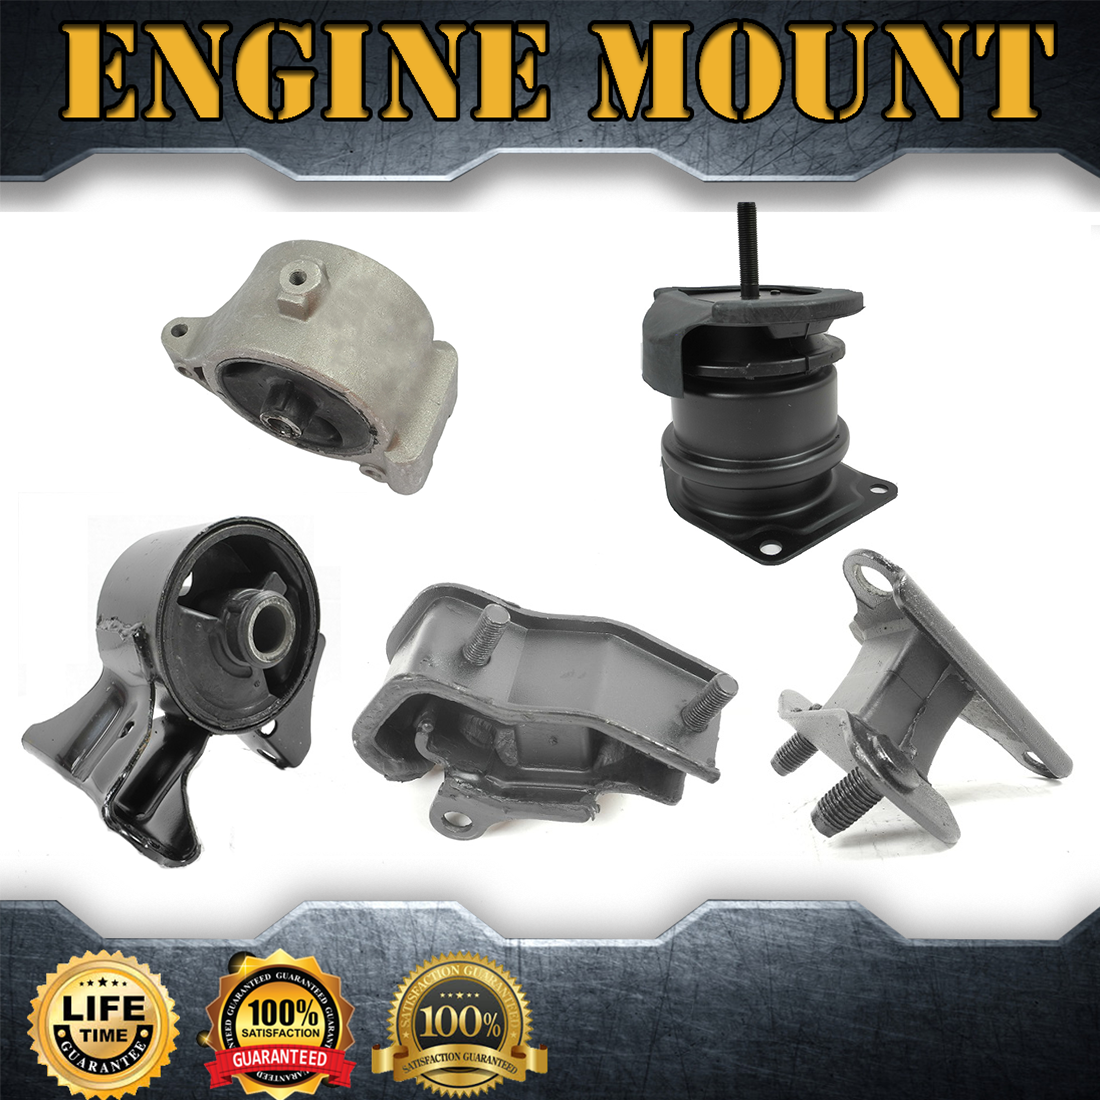 5X Engine Mount & Auto Trans Mount Set Kit For 2000-2003